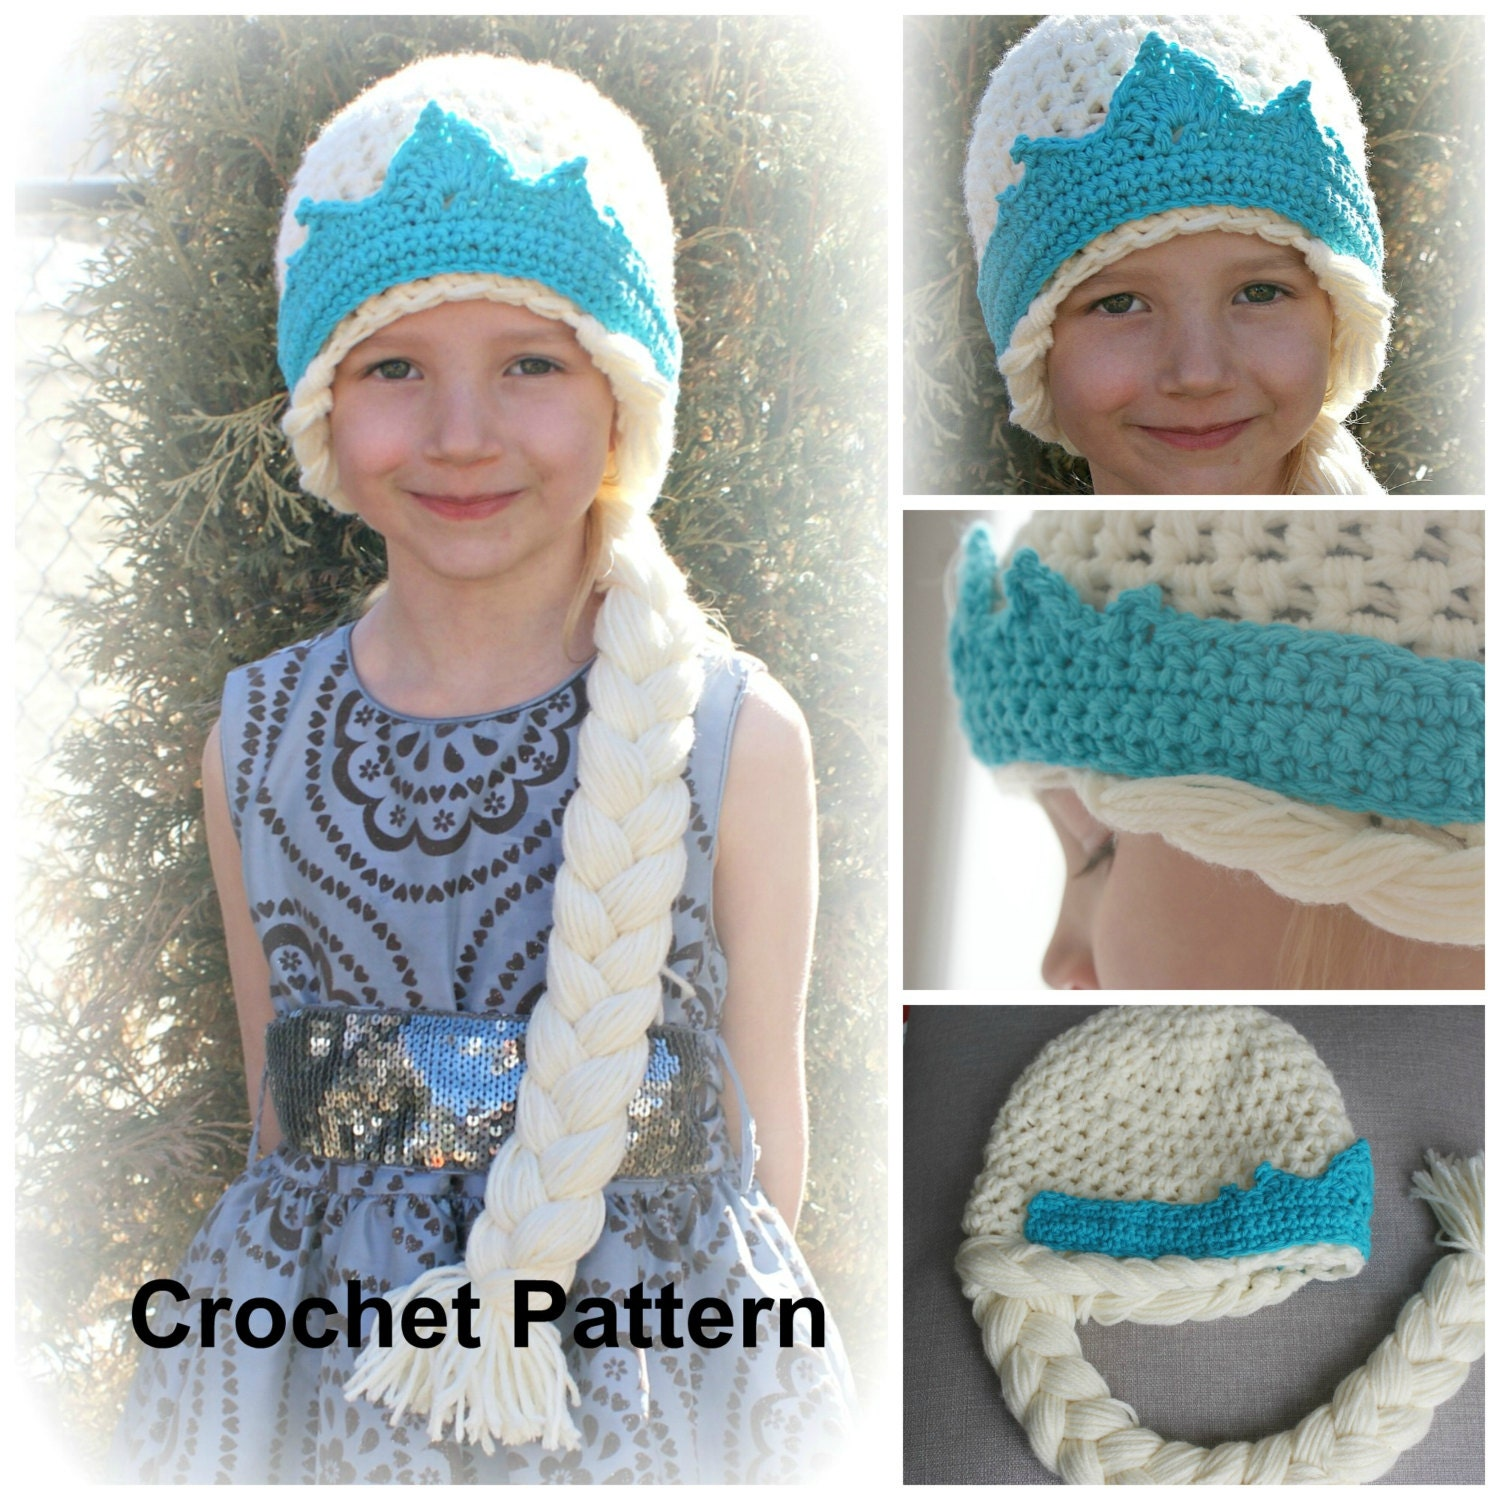 Crochet Pattern Anna Hat : Alfa img - Showing > Elsa Crochet Hat